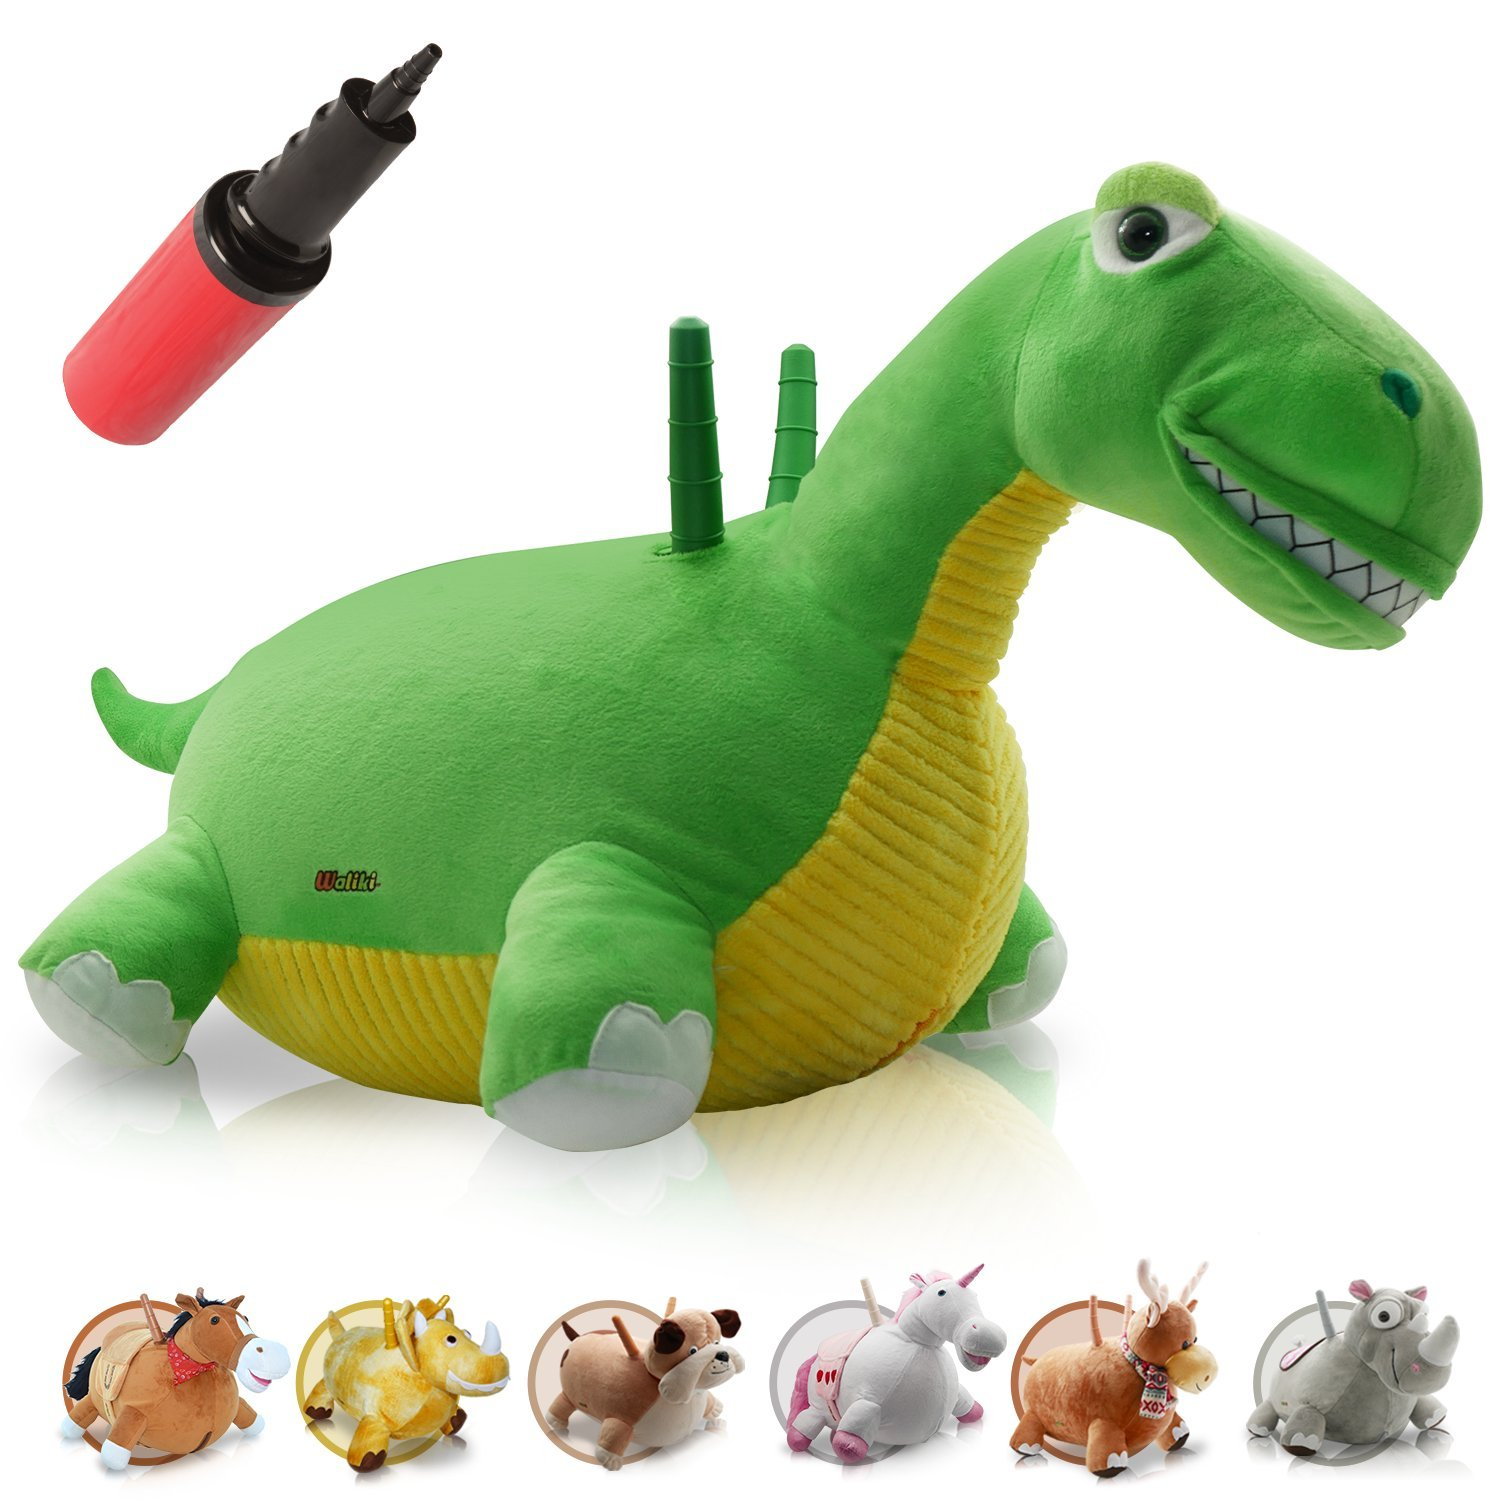 WALIKI TOYS Bouncy Horse Hopper Mr Jones (Hopping Horse, Inflatable Ride-On Pony, Ridding Horse For Kids, Jumping Horse, Pump Included) HDS-HORSE